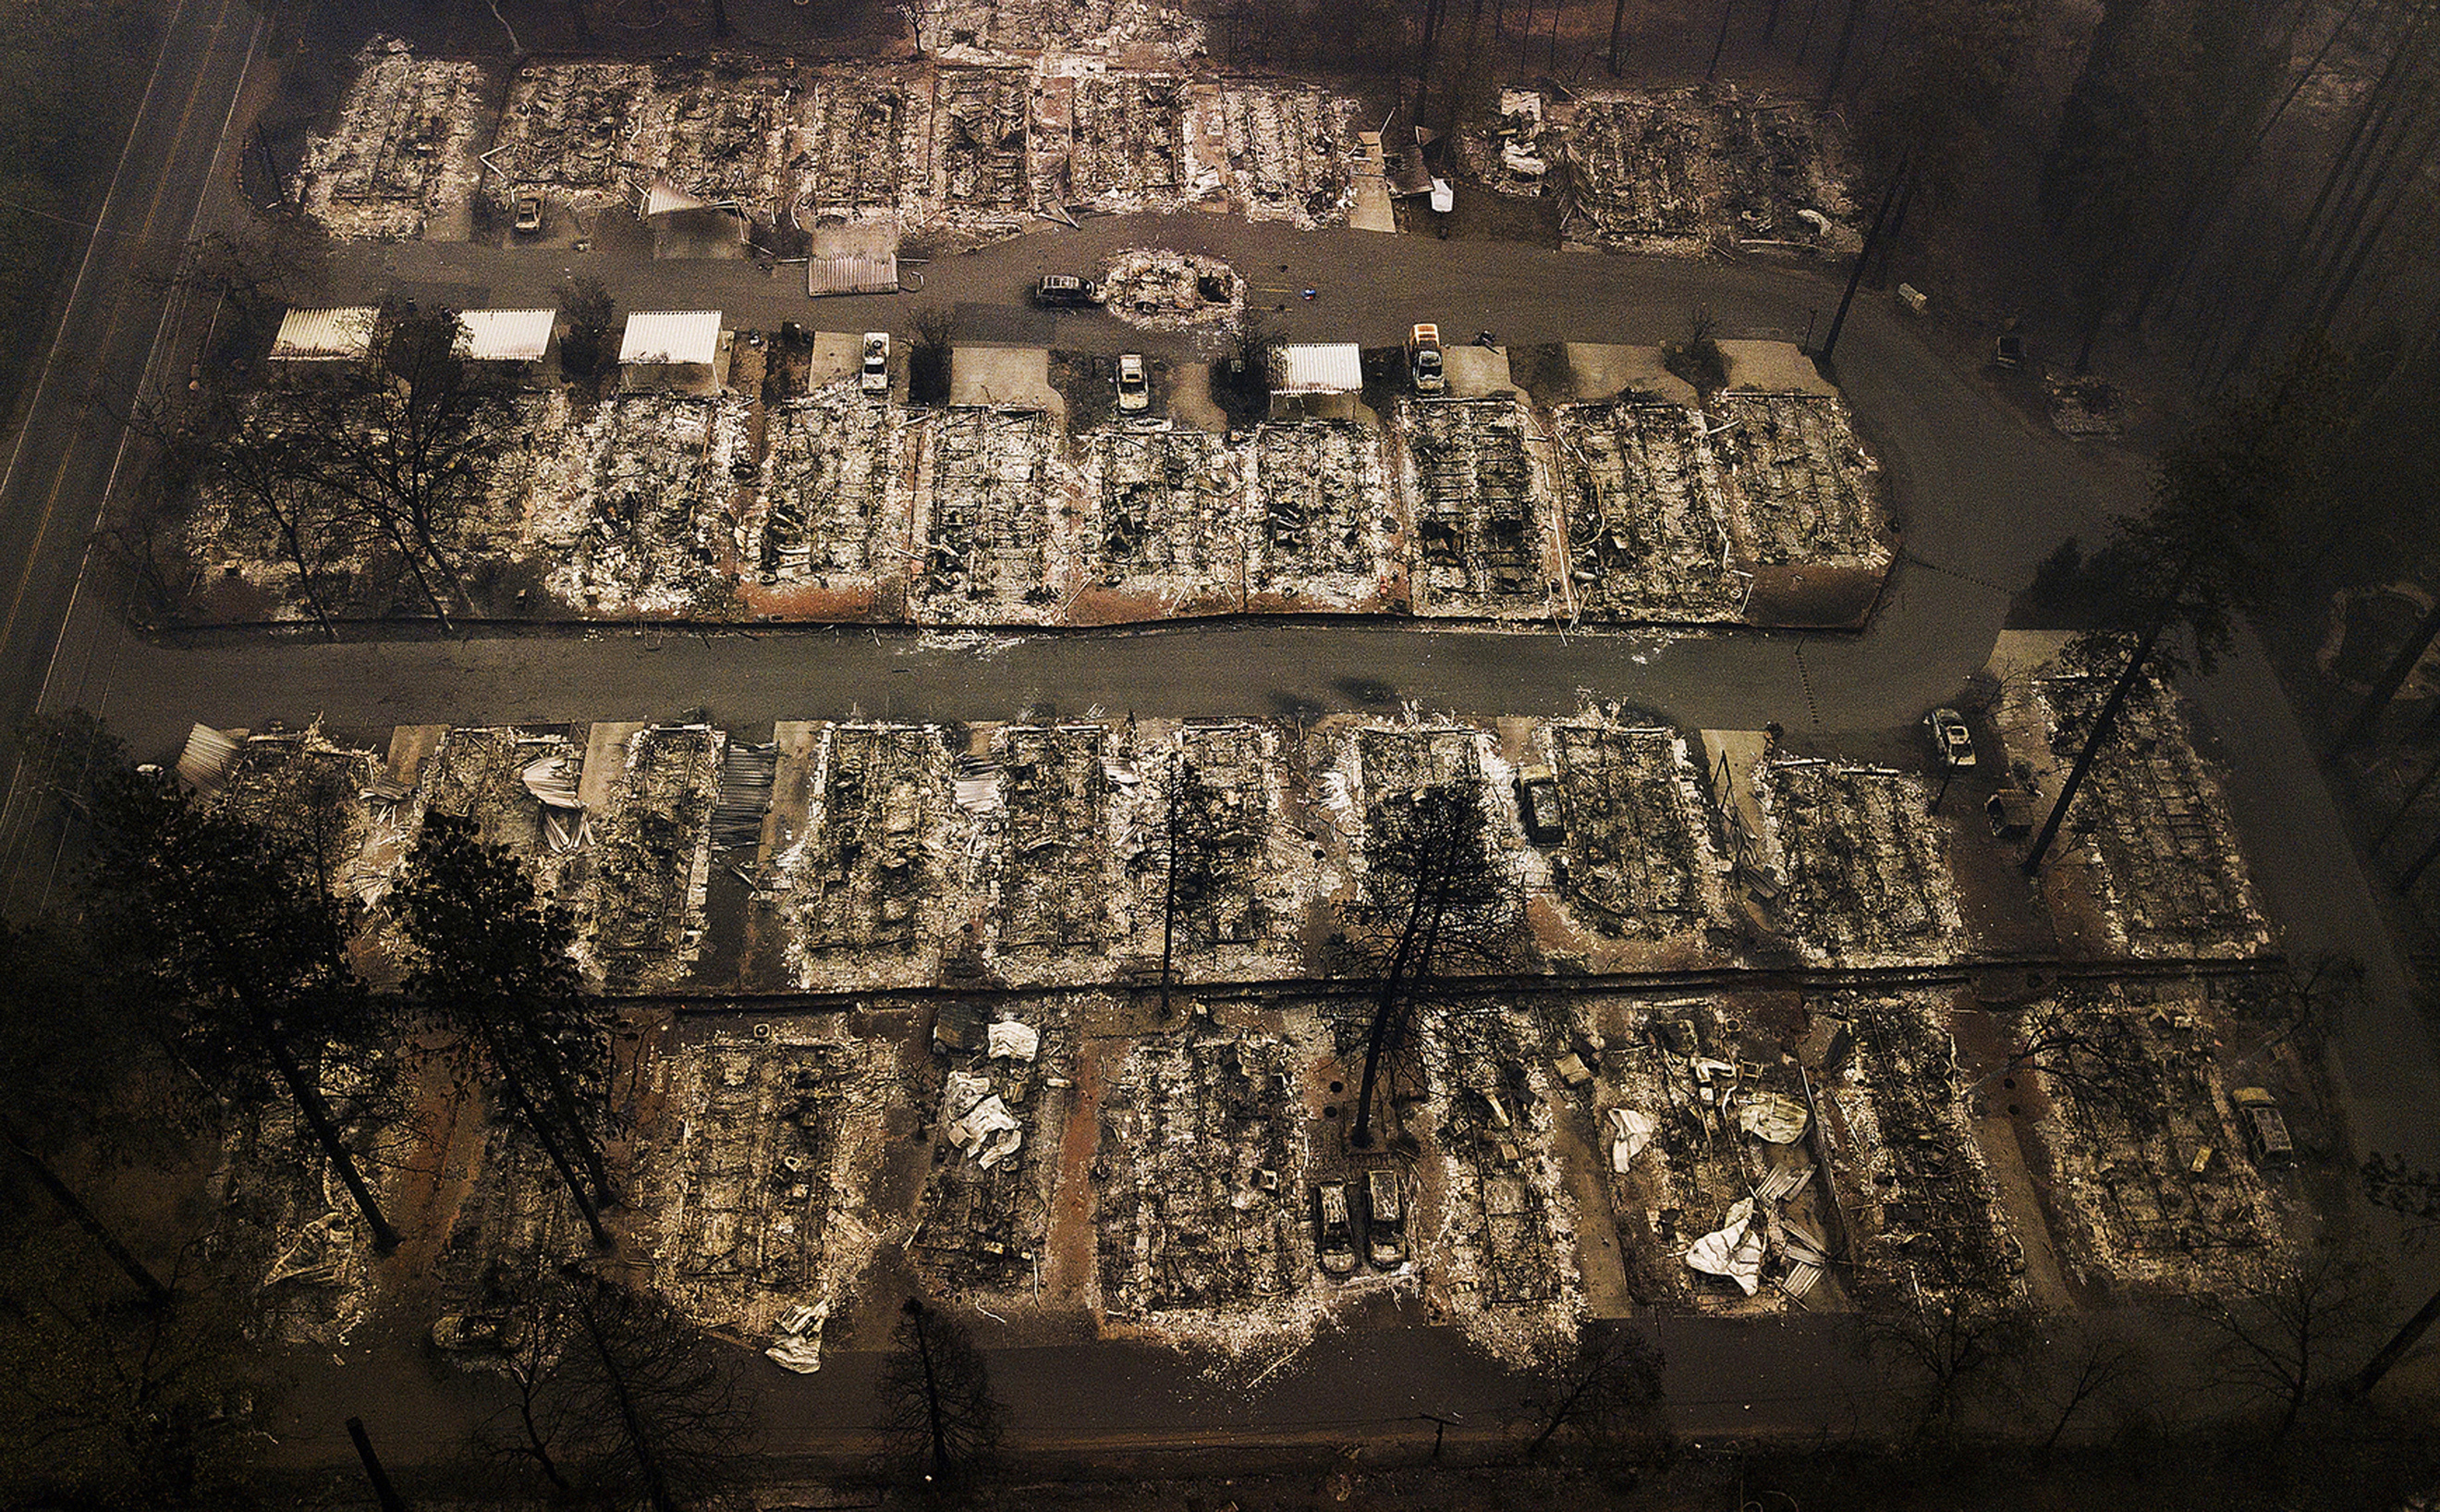 This Nov. 15, 2018, aerial file photo shows the remains of residences leveled by the Camp wildfire in Paradise, Calif. People who lost family members, homes and businesses in California wildfires had a Tuesday, Dec. 31, 2019, deadline to seek compensation from the nation's largest utility as part of its bankruptcy case. The deadline involved claims to receive part of the $13.5 billion Pacific Gas & Electric will pay for losses from deadly wildfires in Northern California in 2017 and 2018.